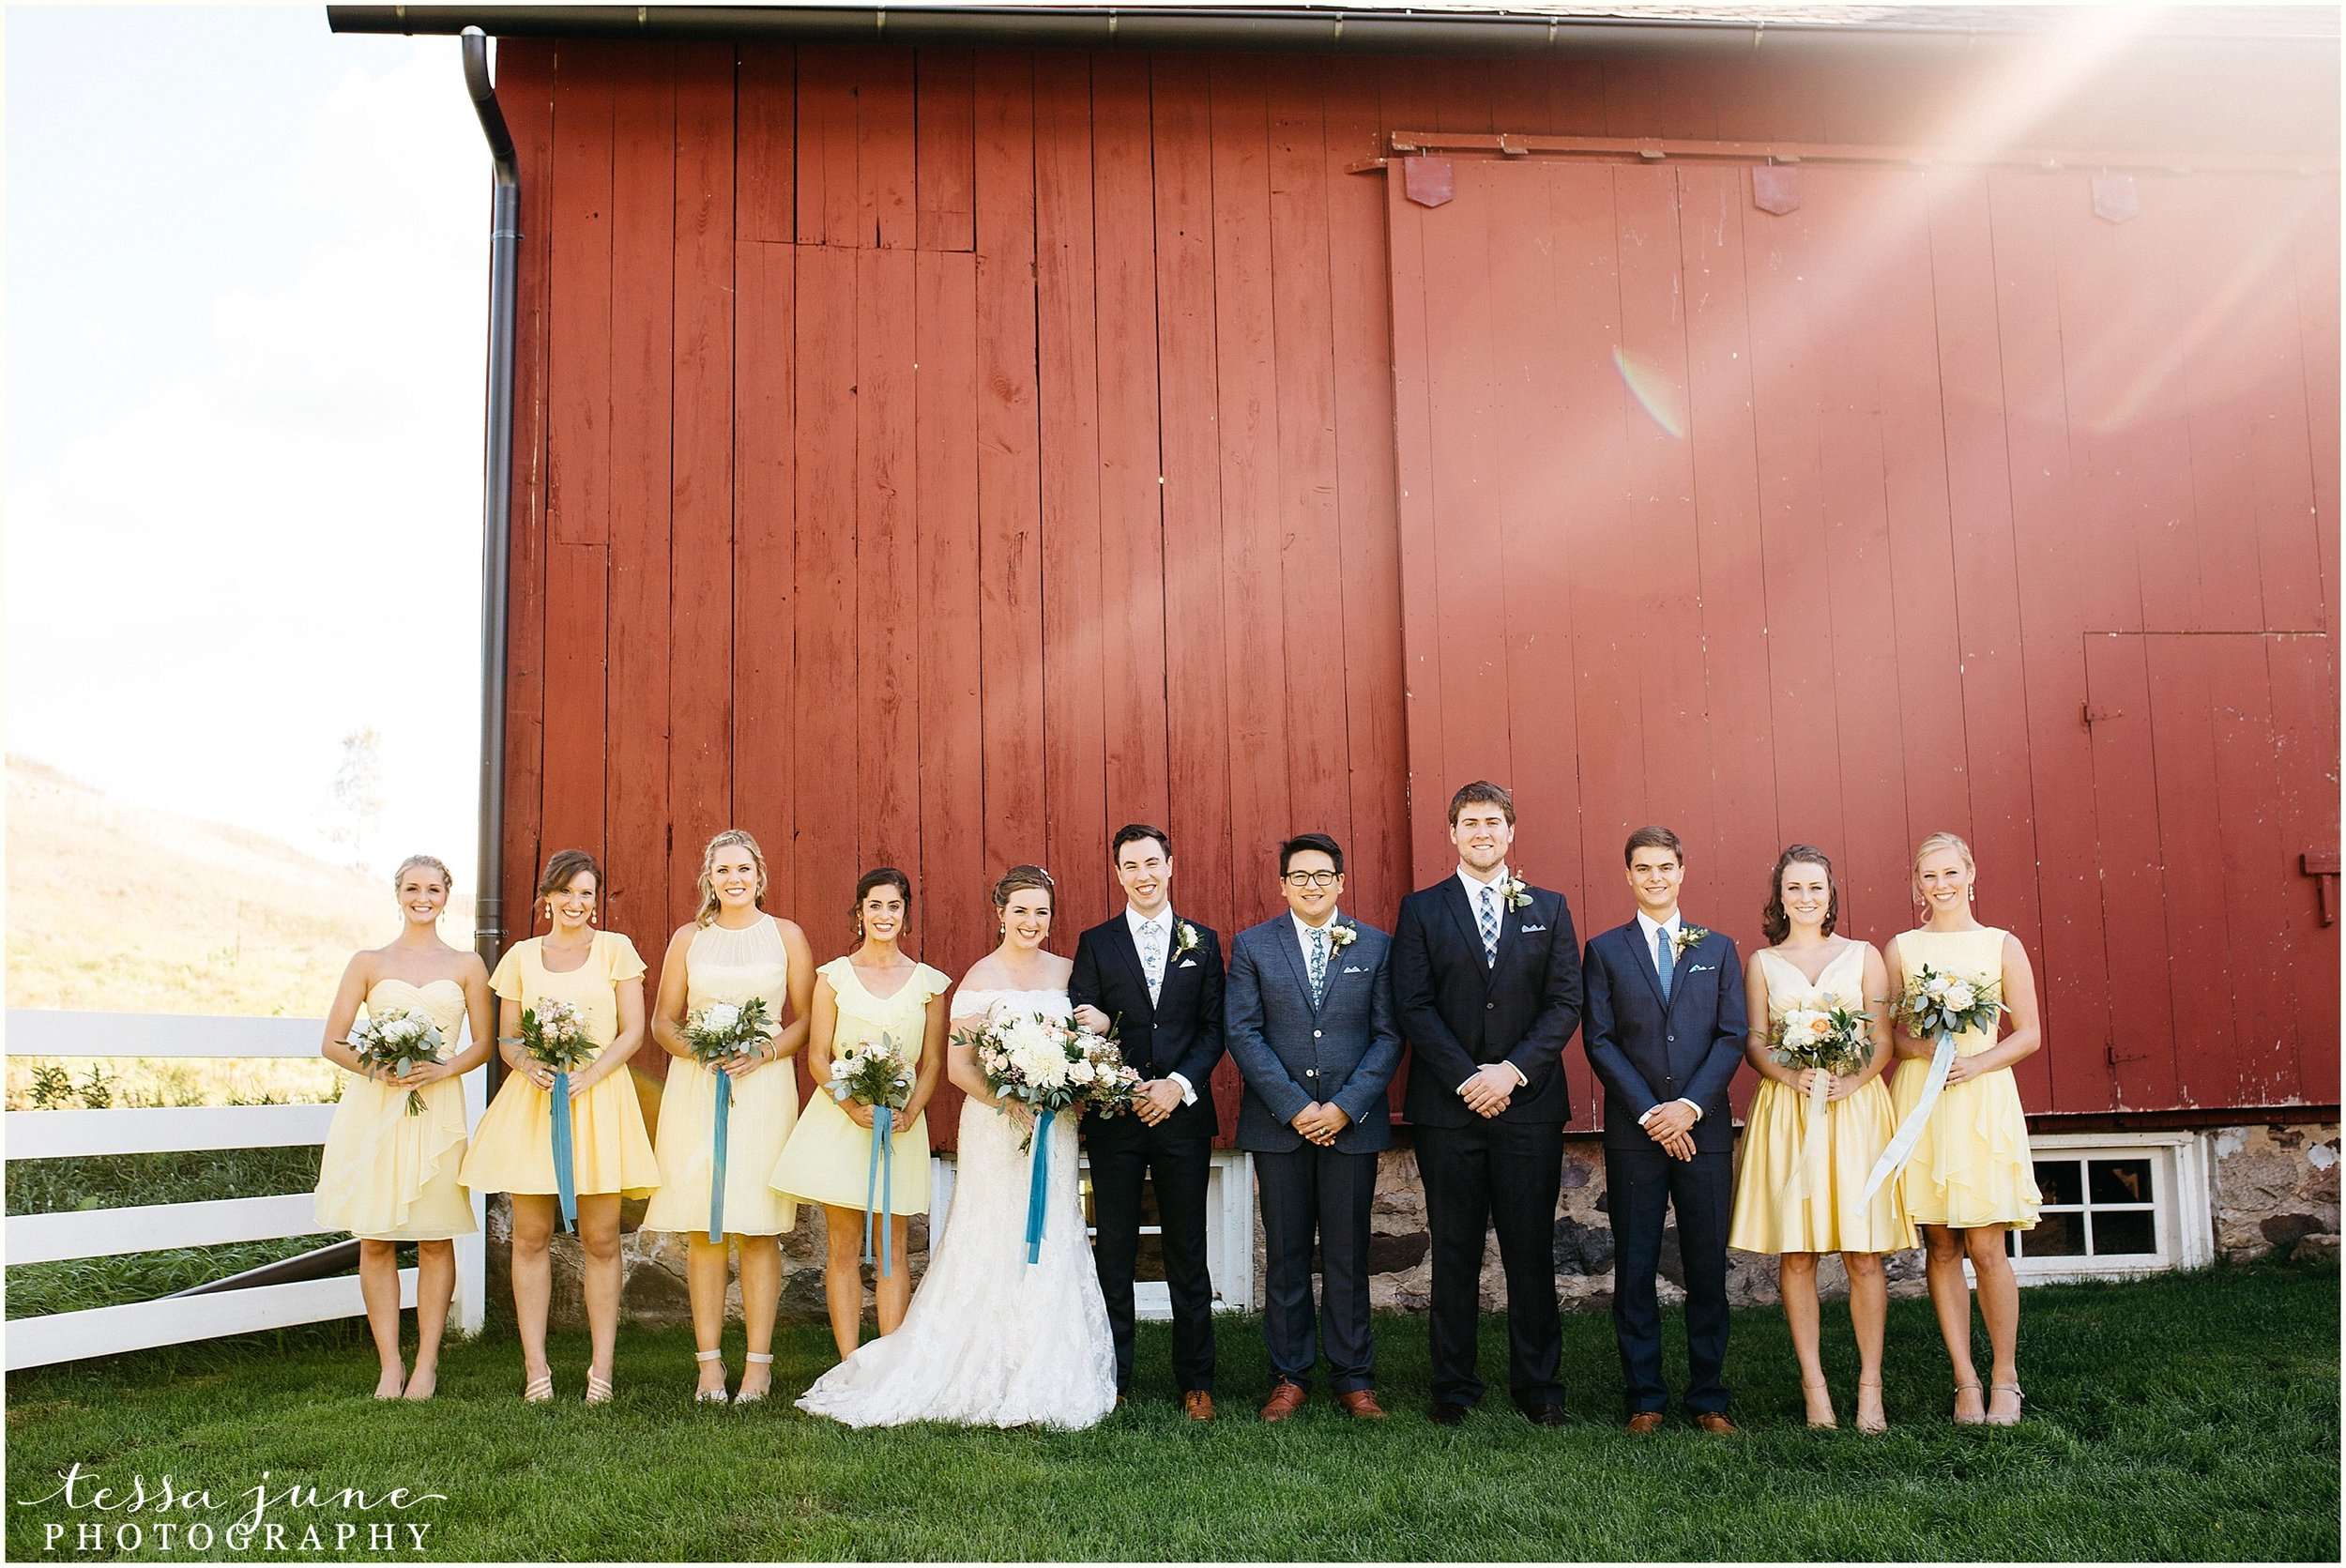 birch-hill-barn-glenwood-city-wisconsin-st-cloud-wedding-photographer-3957.jpg